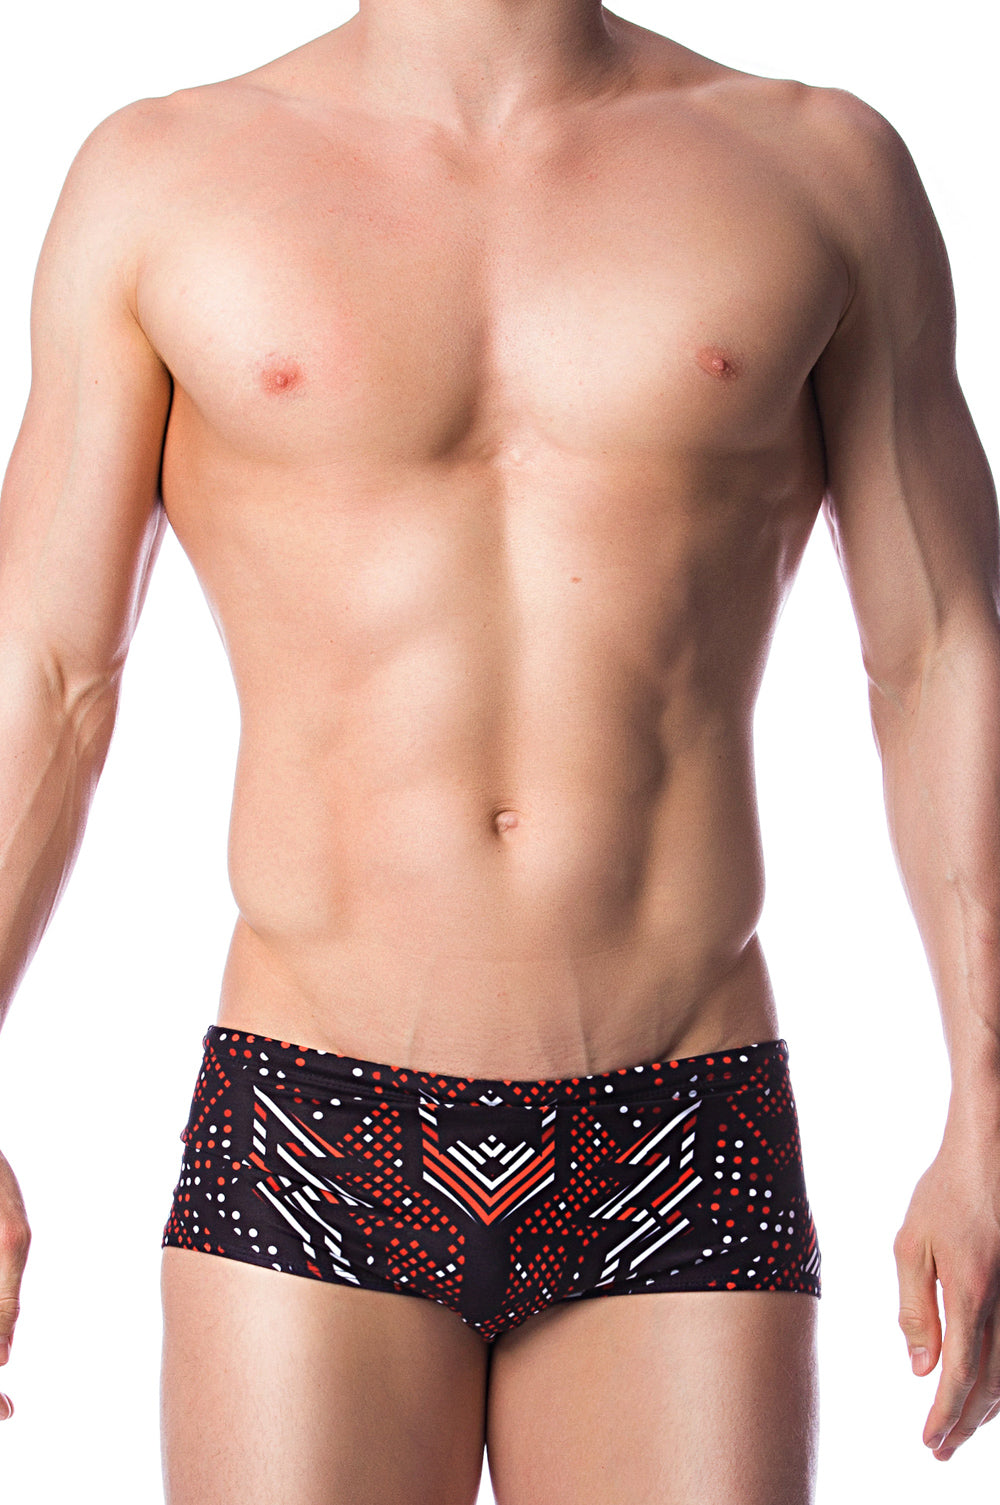 2d5e6256c2 Blaze Men's Trunks - Shop Zealous Training Swimwear